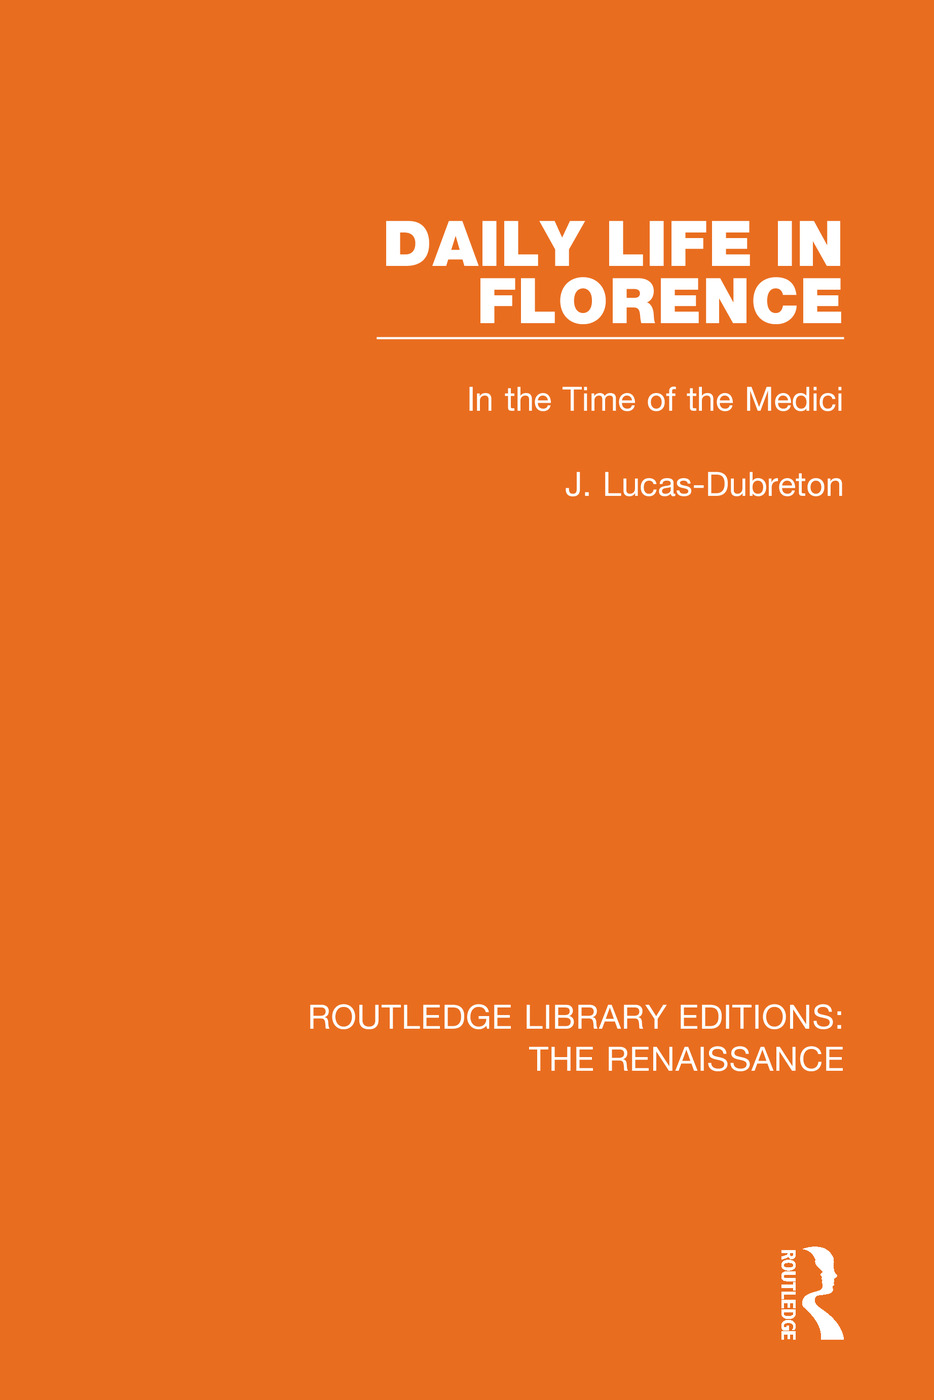 Daily Life in Florence: In the Time of the Medici book cover